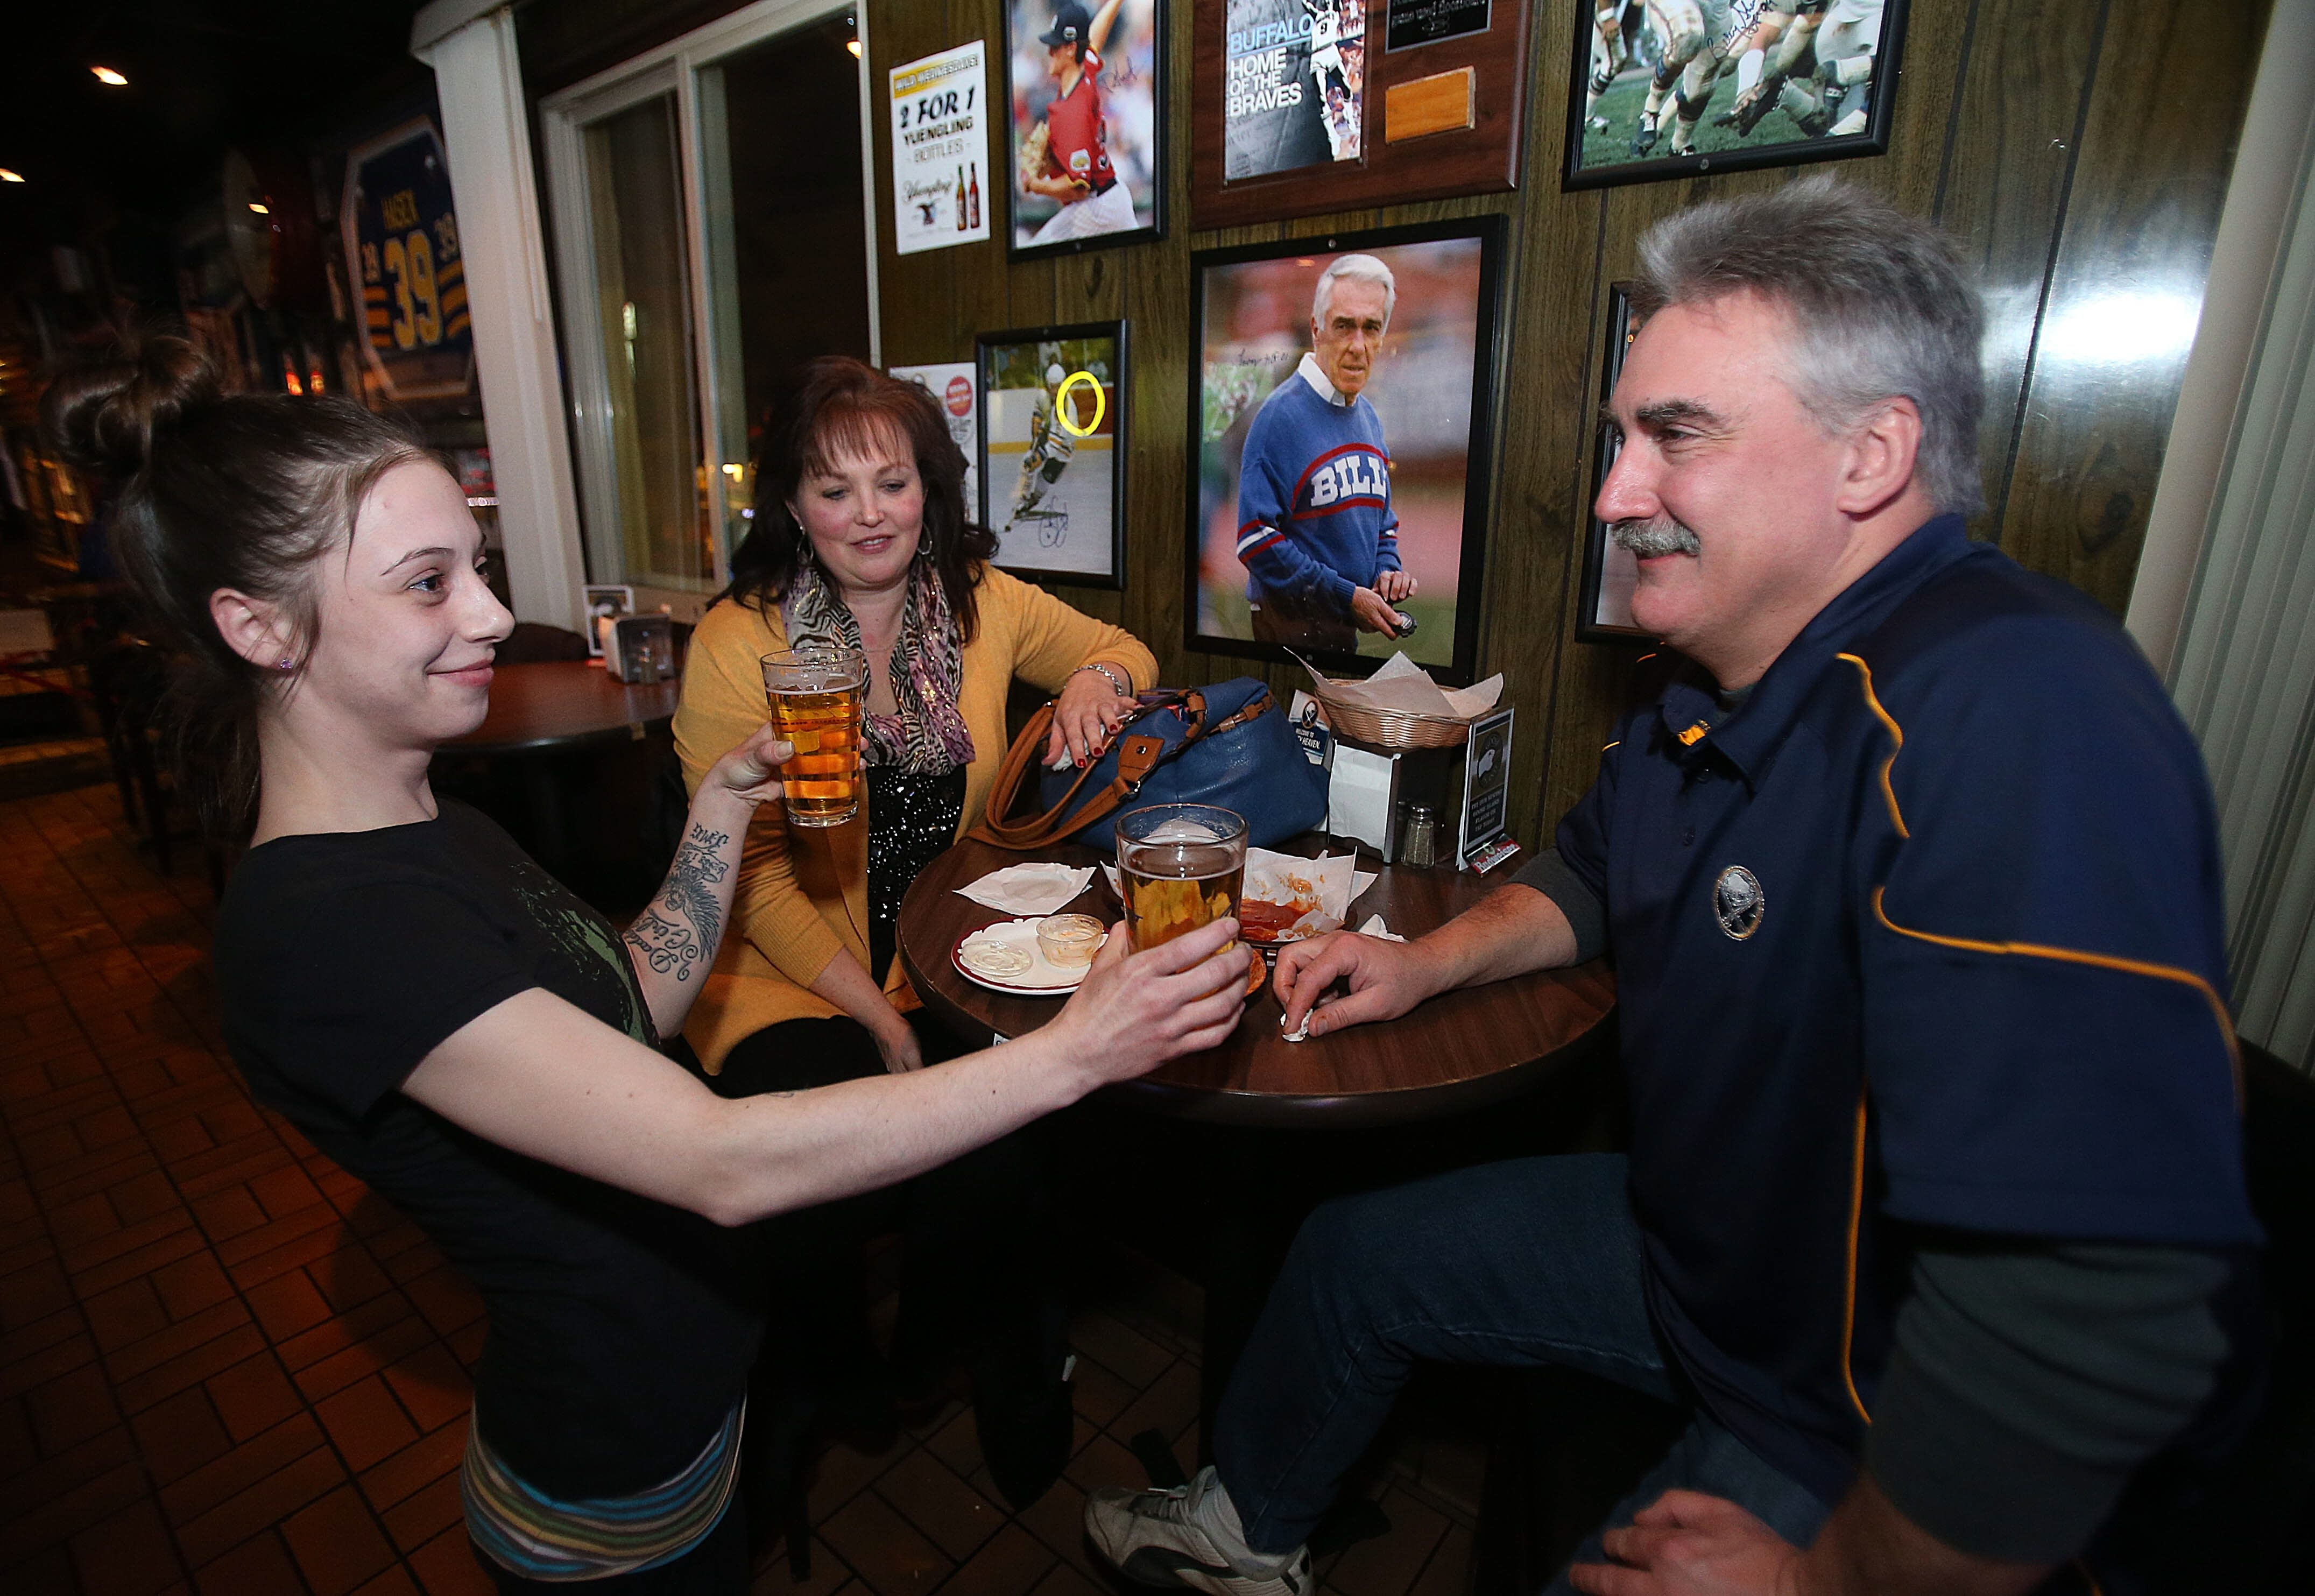 Ashley Gostomski delivers fresh pints of beer to Kim and Mike Green of Grand Island as they watch a Sabres game at Mitchell's Tavern in the Town of Tonawanda.